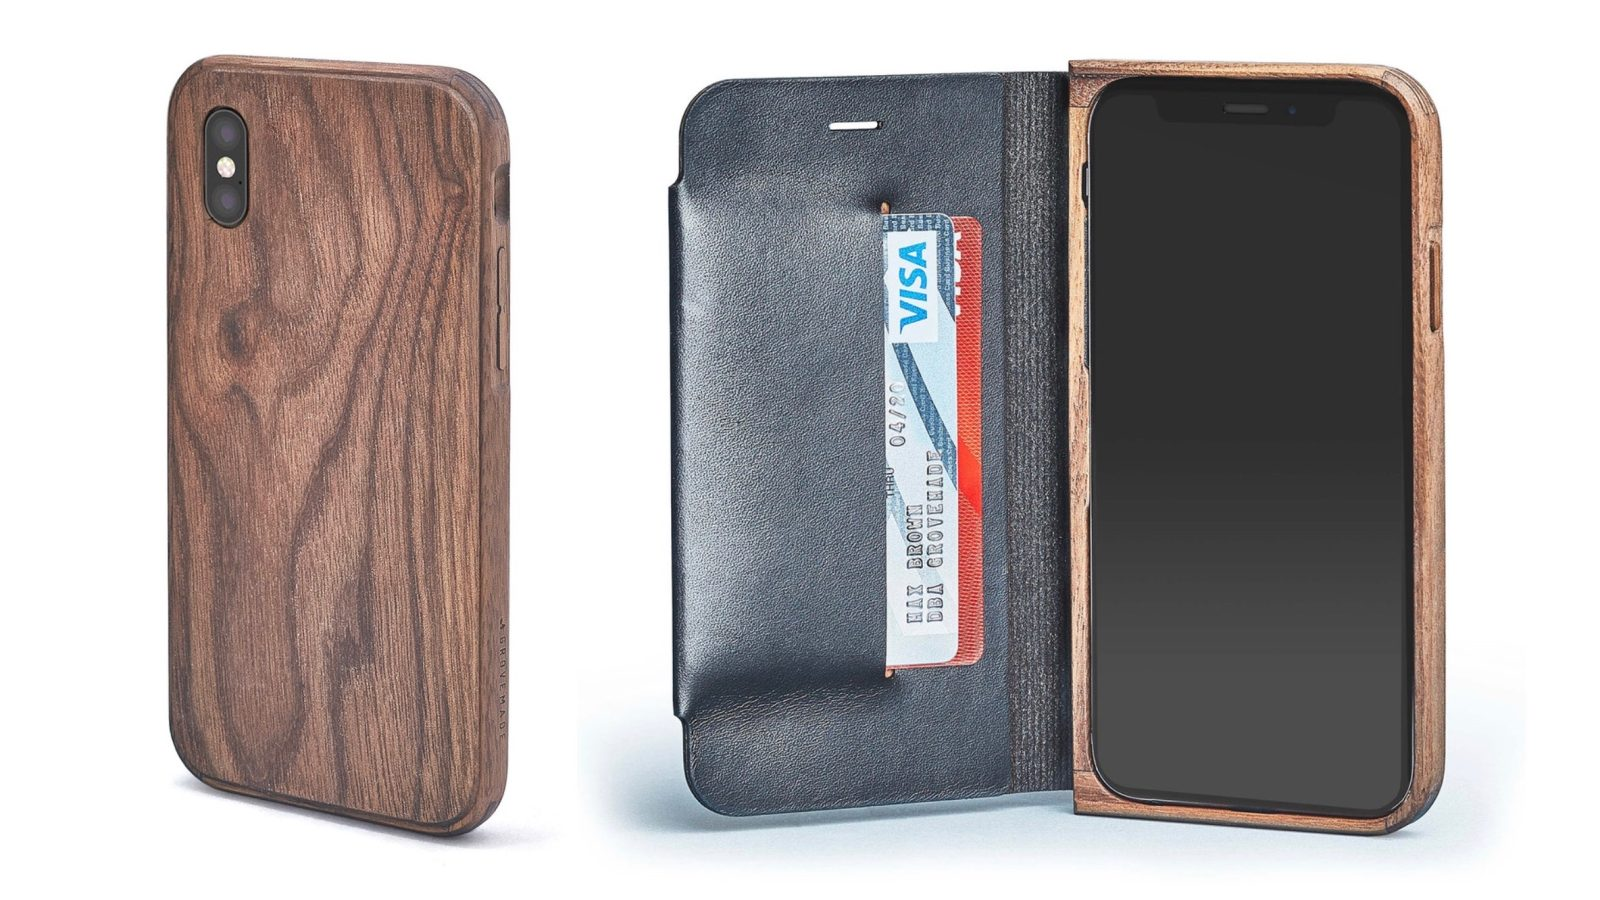 sports shoes ebf63 c02ff Grovemade's artisan lineup of wood iPhone cases available for XS/Max ...